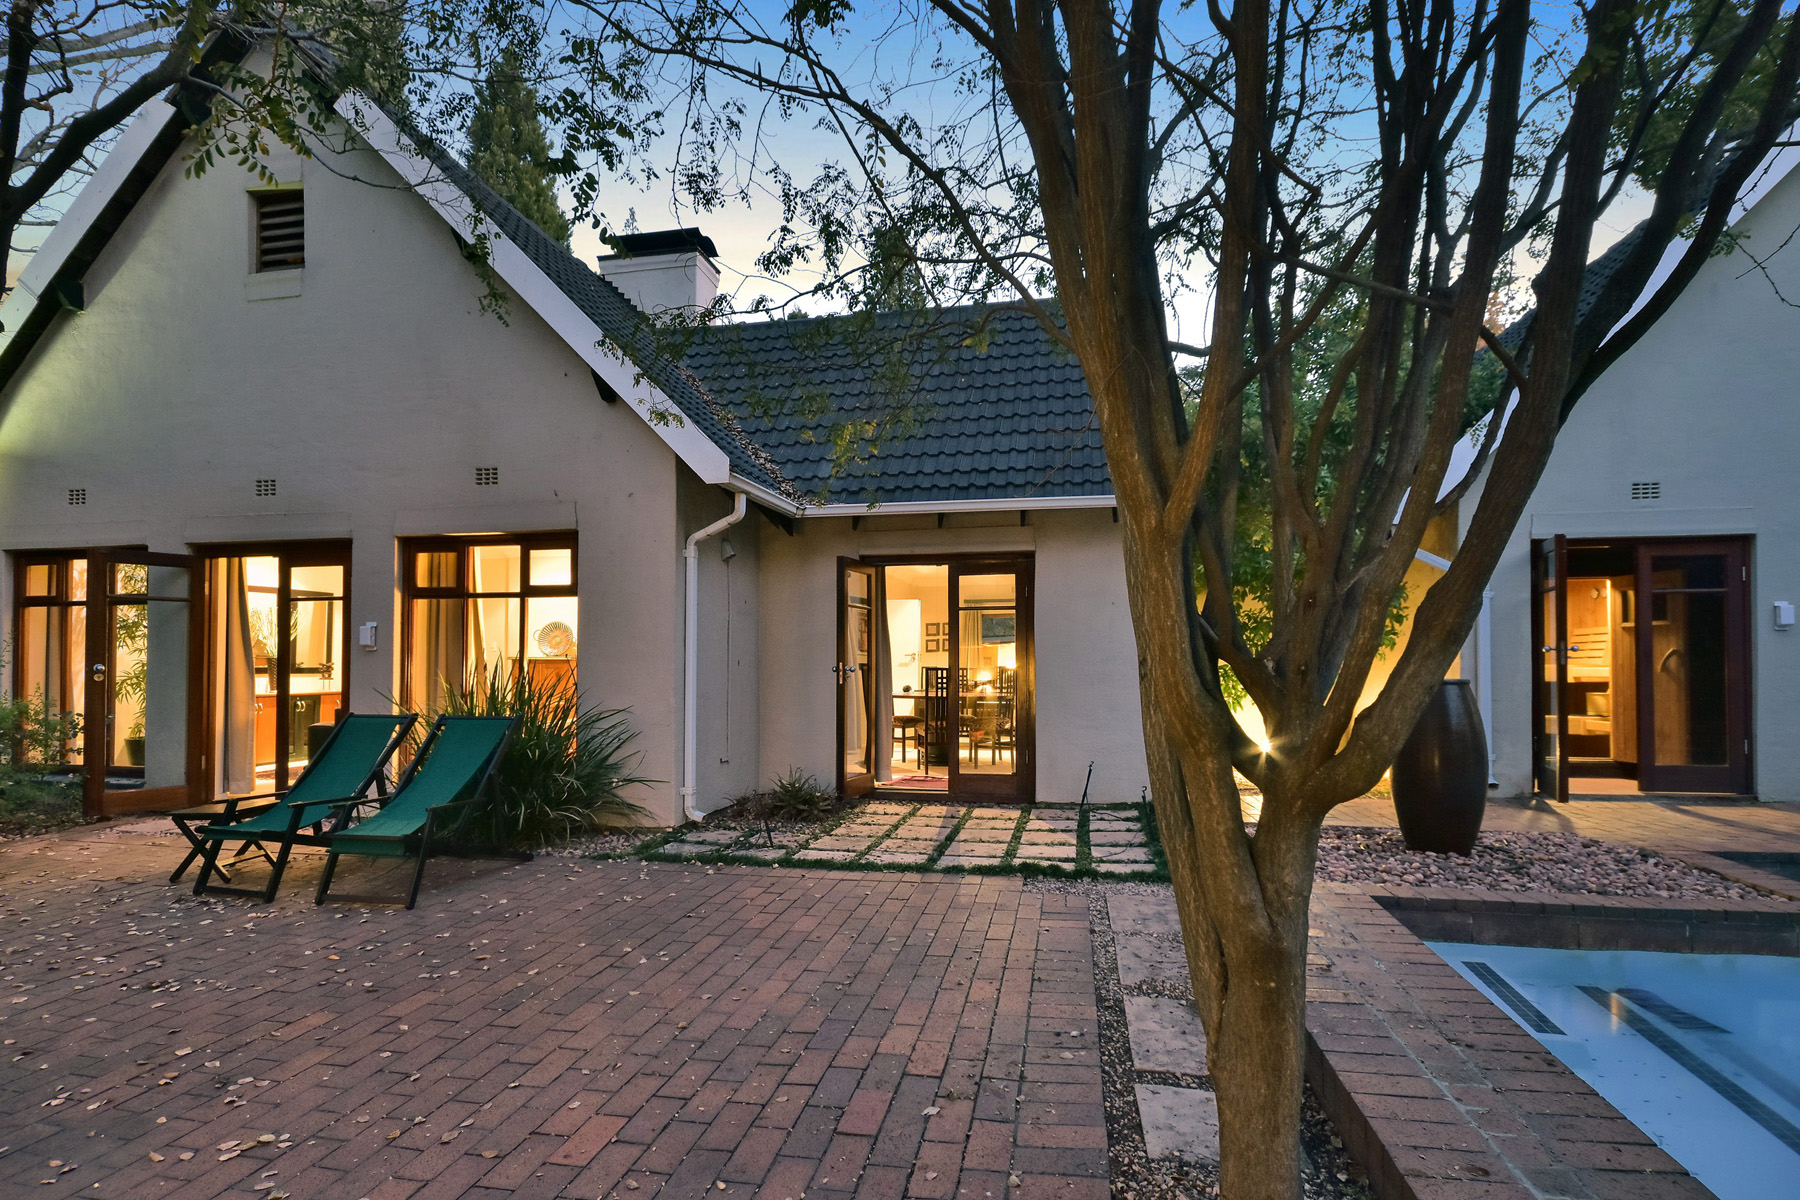 Single Family Home for Sale at Parkmore Johannesburg, Gauteng, 2196 South Africa